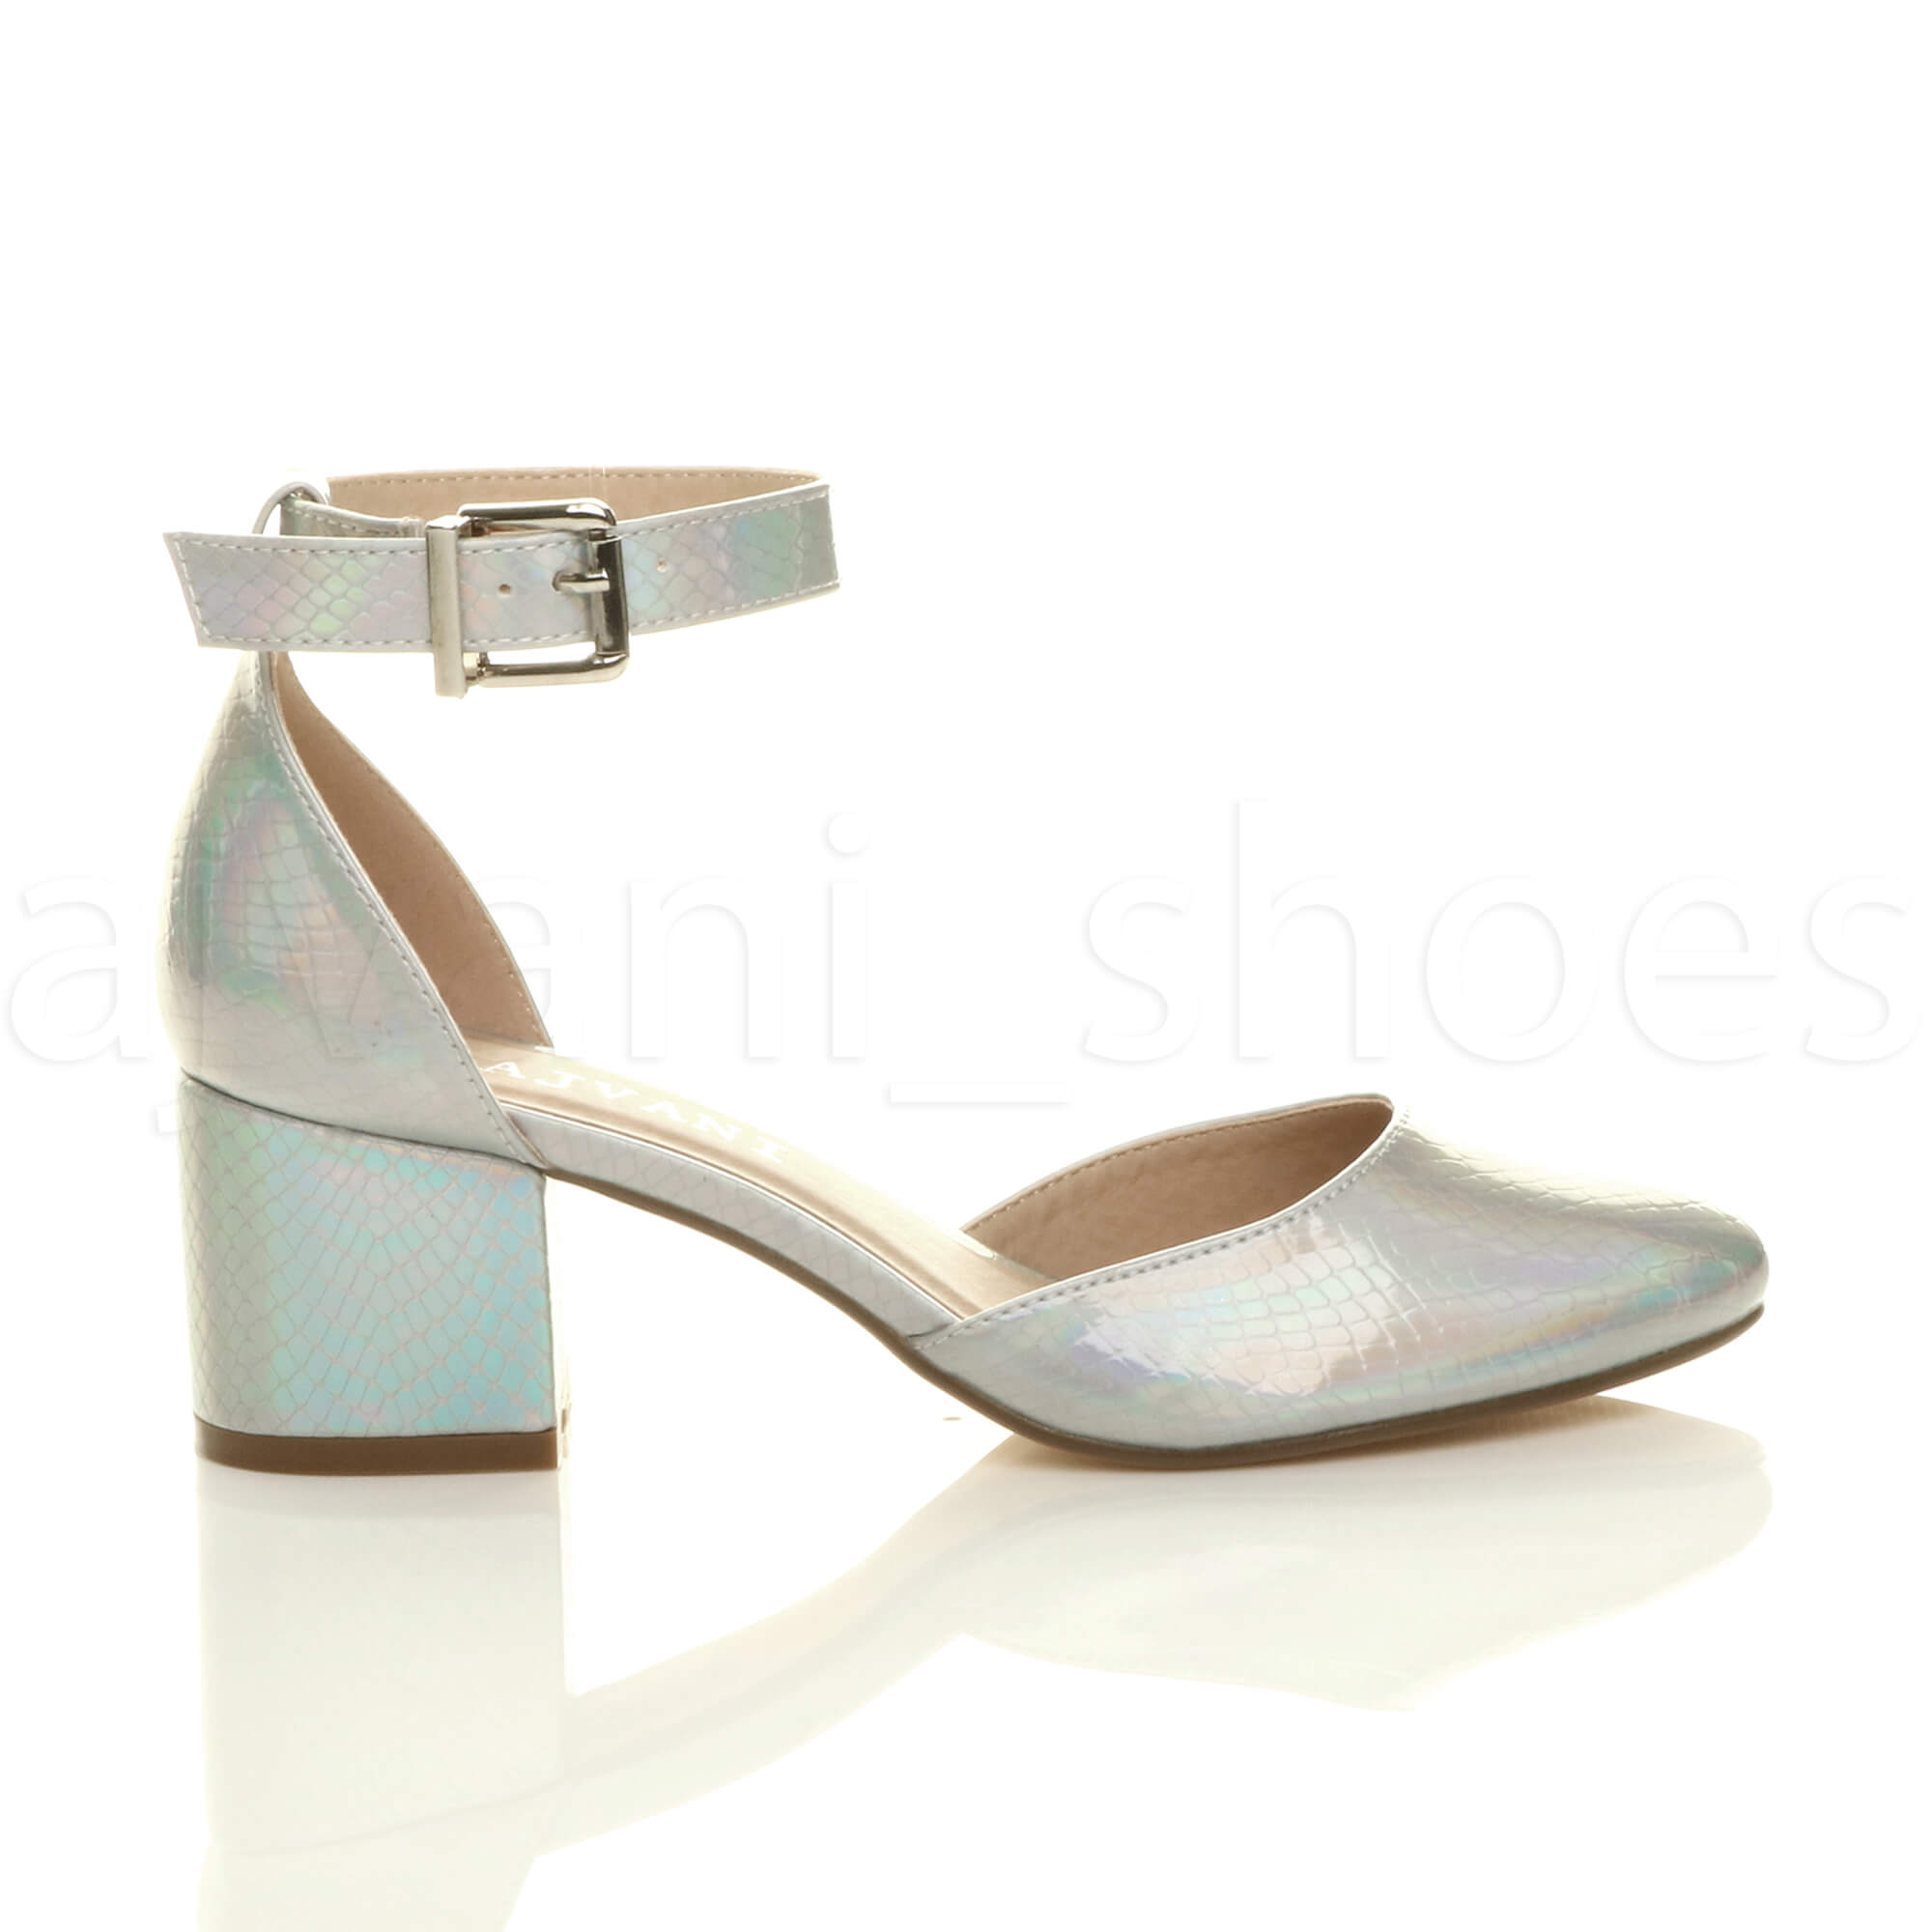 WOMENS-LADIES-LOW-MID-BLOCK-HEEL-ANKLE-STRAP-MARY-JANE-COURT-SHOES-SANDALS-SIZE thumbnail 163